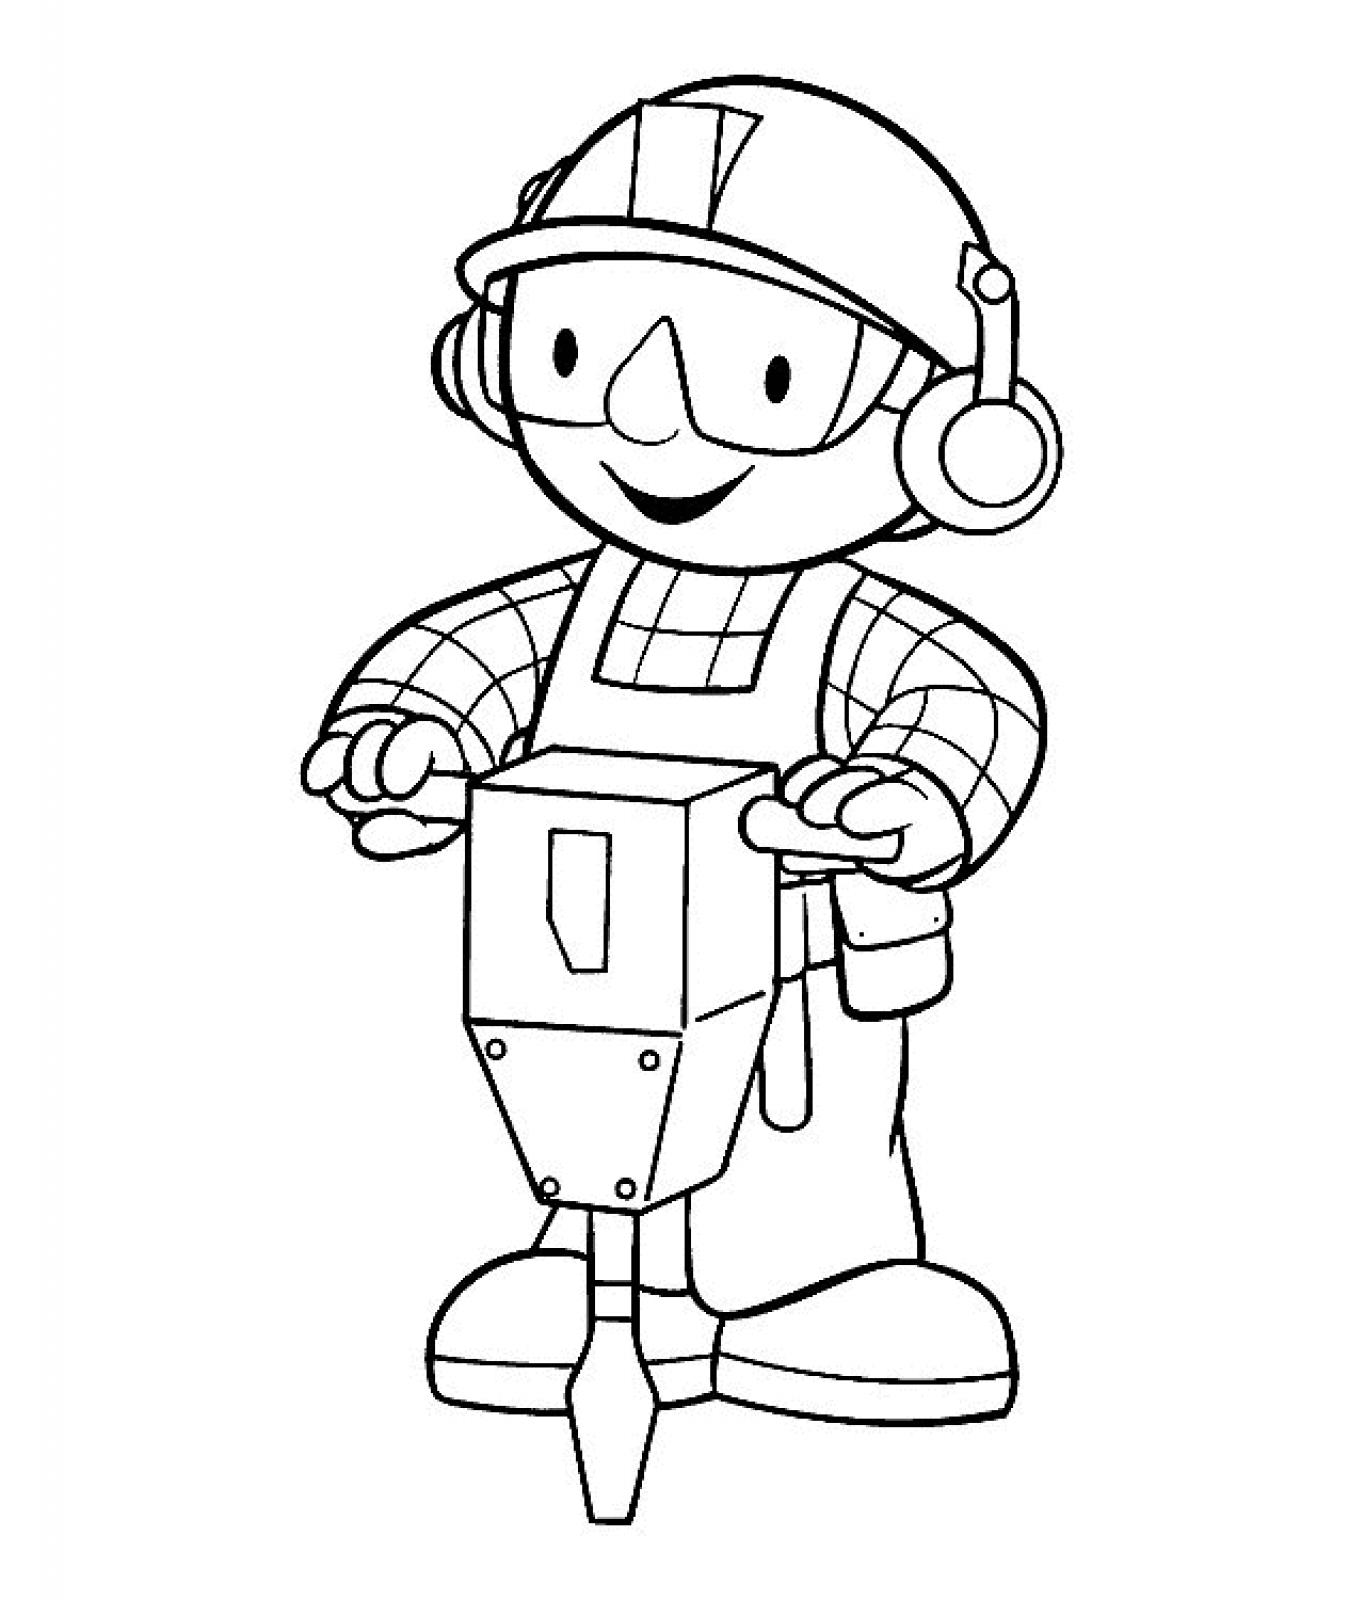 Printable Bob the Builder Coloring Pages   ColoringMe.com